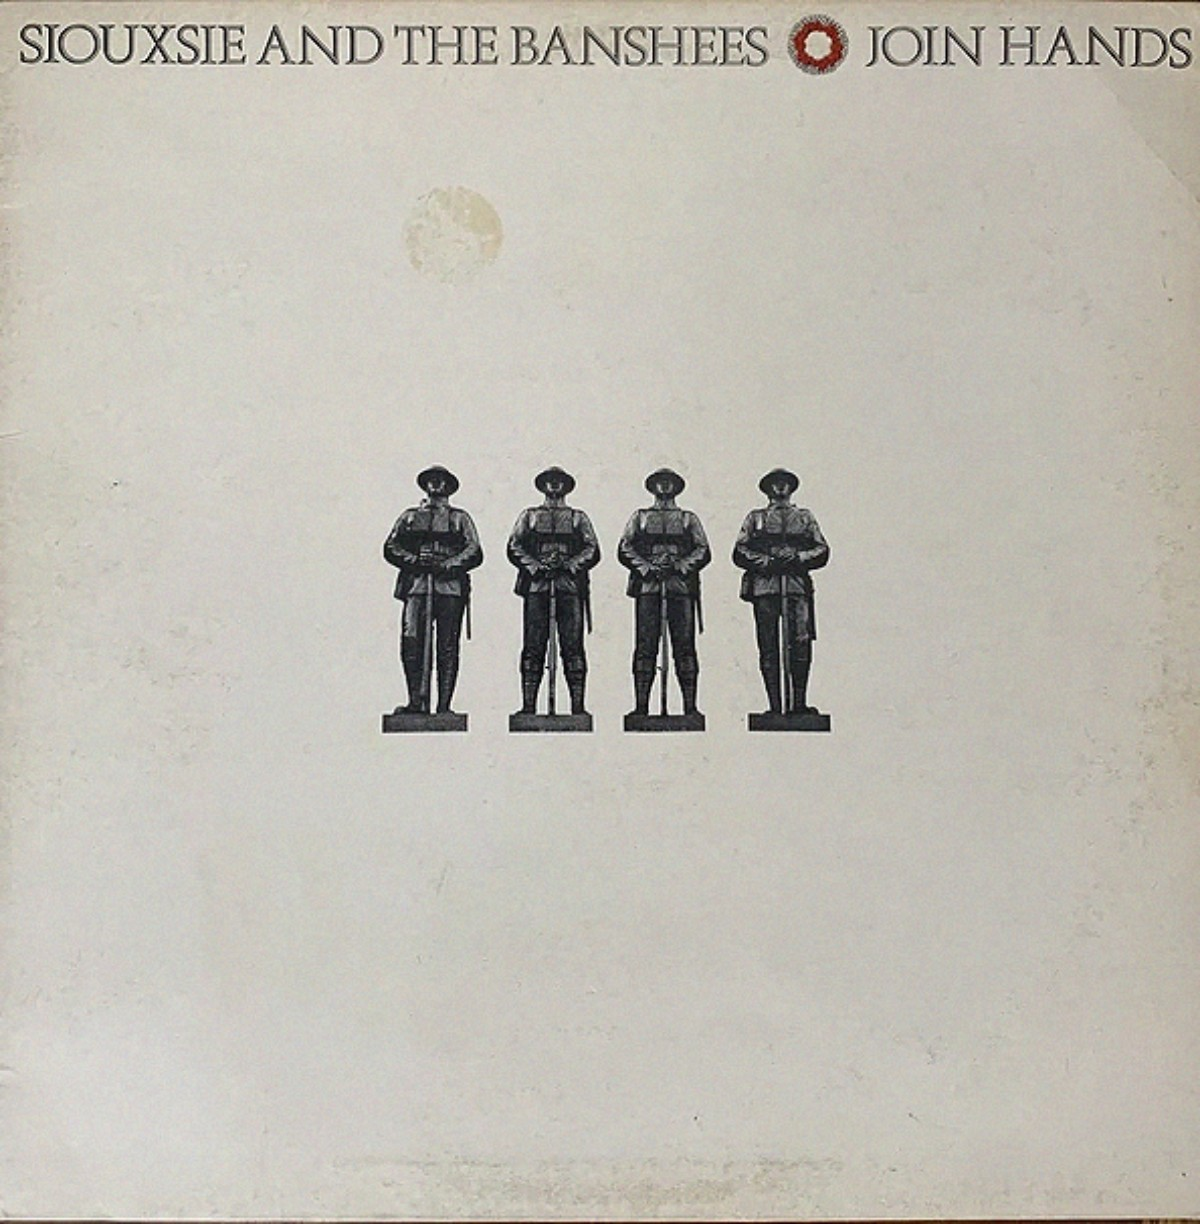 Siouxsie And The Banshees, альбом «Join Hands» (1979)